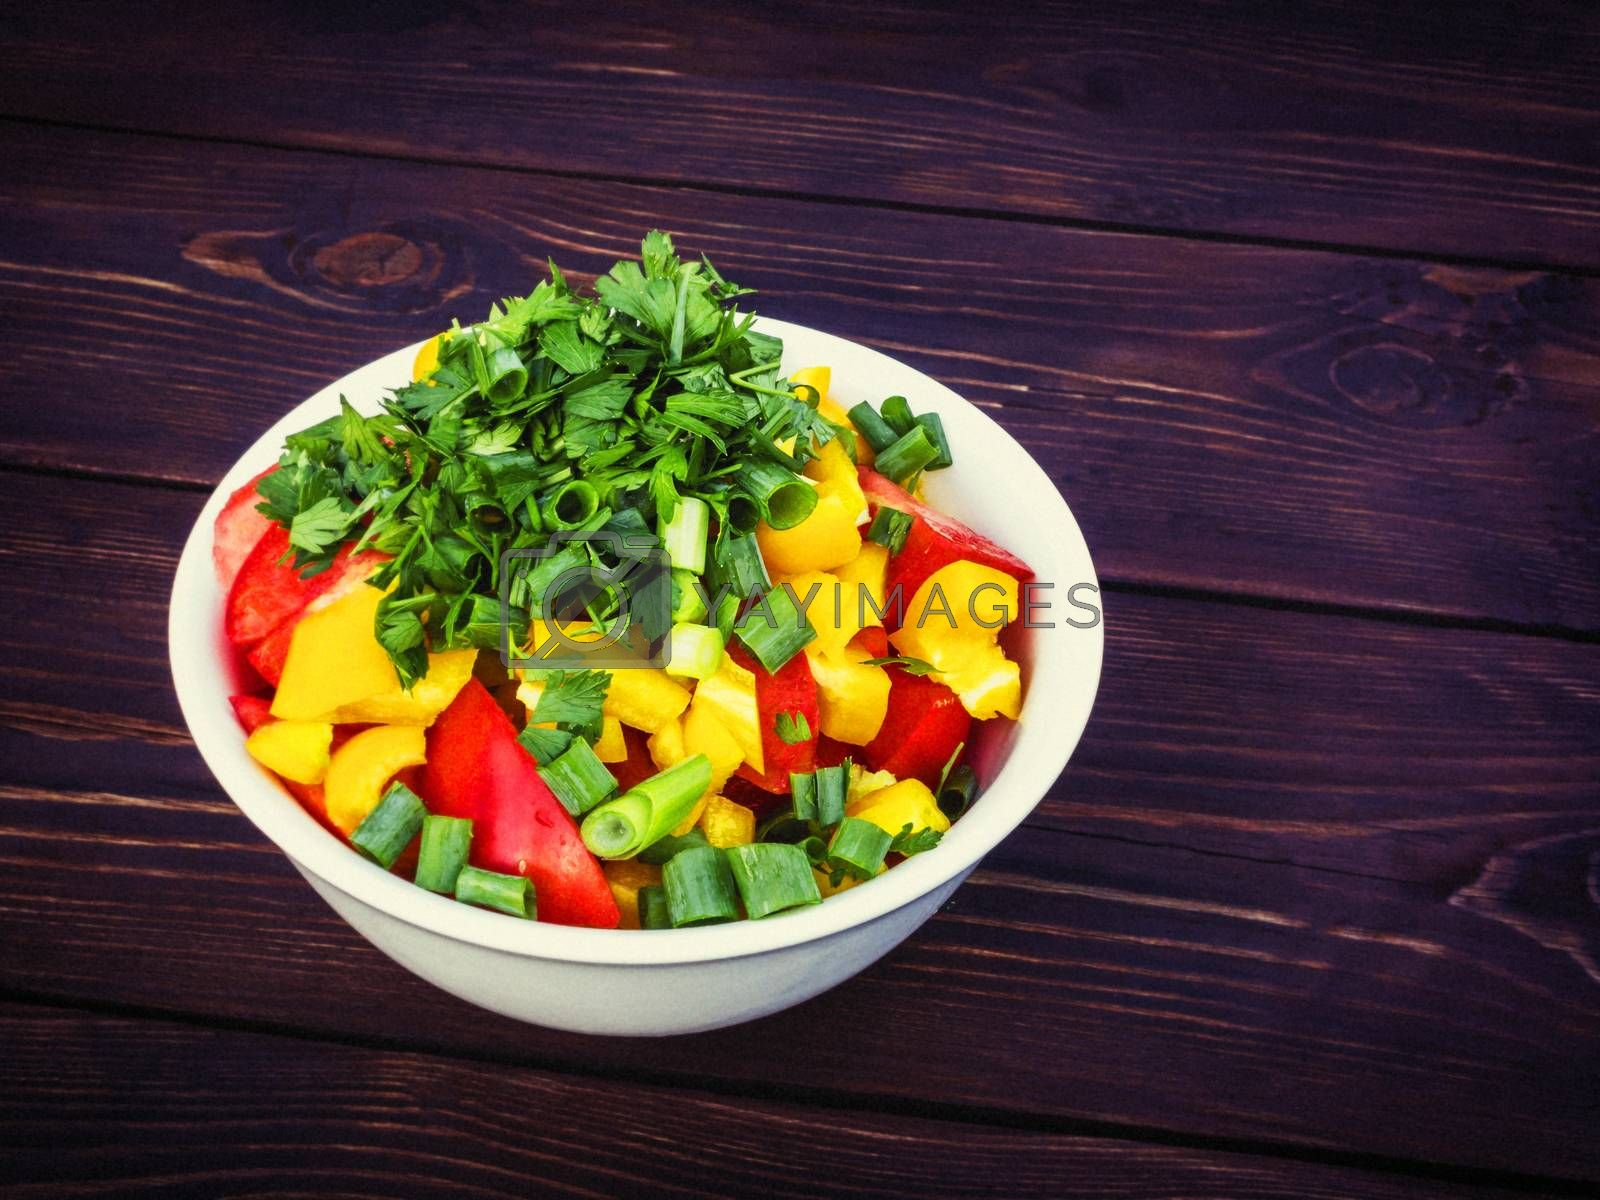 Fresh vegetable salad with herbs in a white bowl on a dark wooden table by galsand